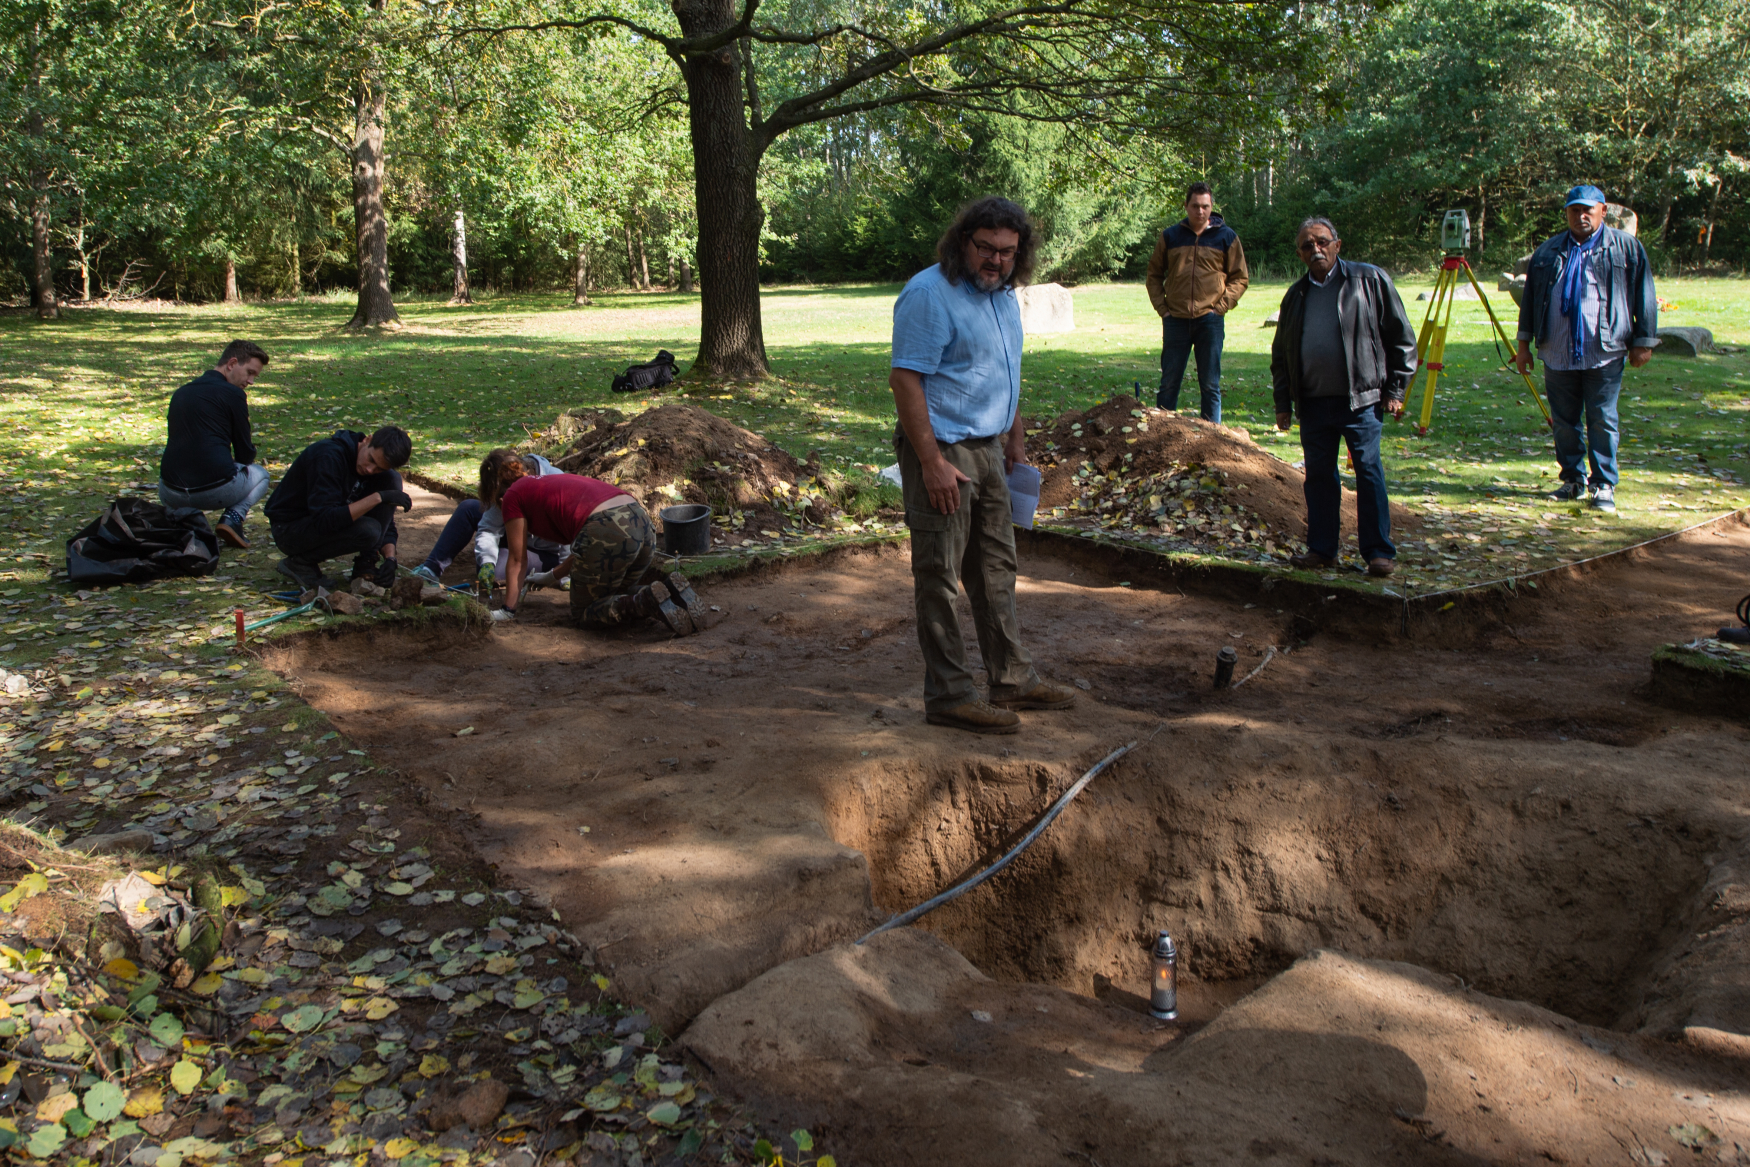 Archaeologists discover graves of Roma persecuted during WWII in Lety camp